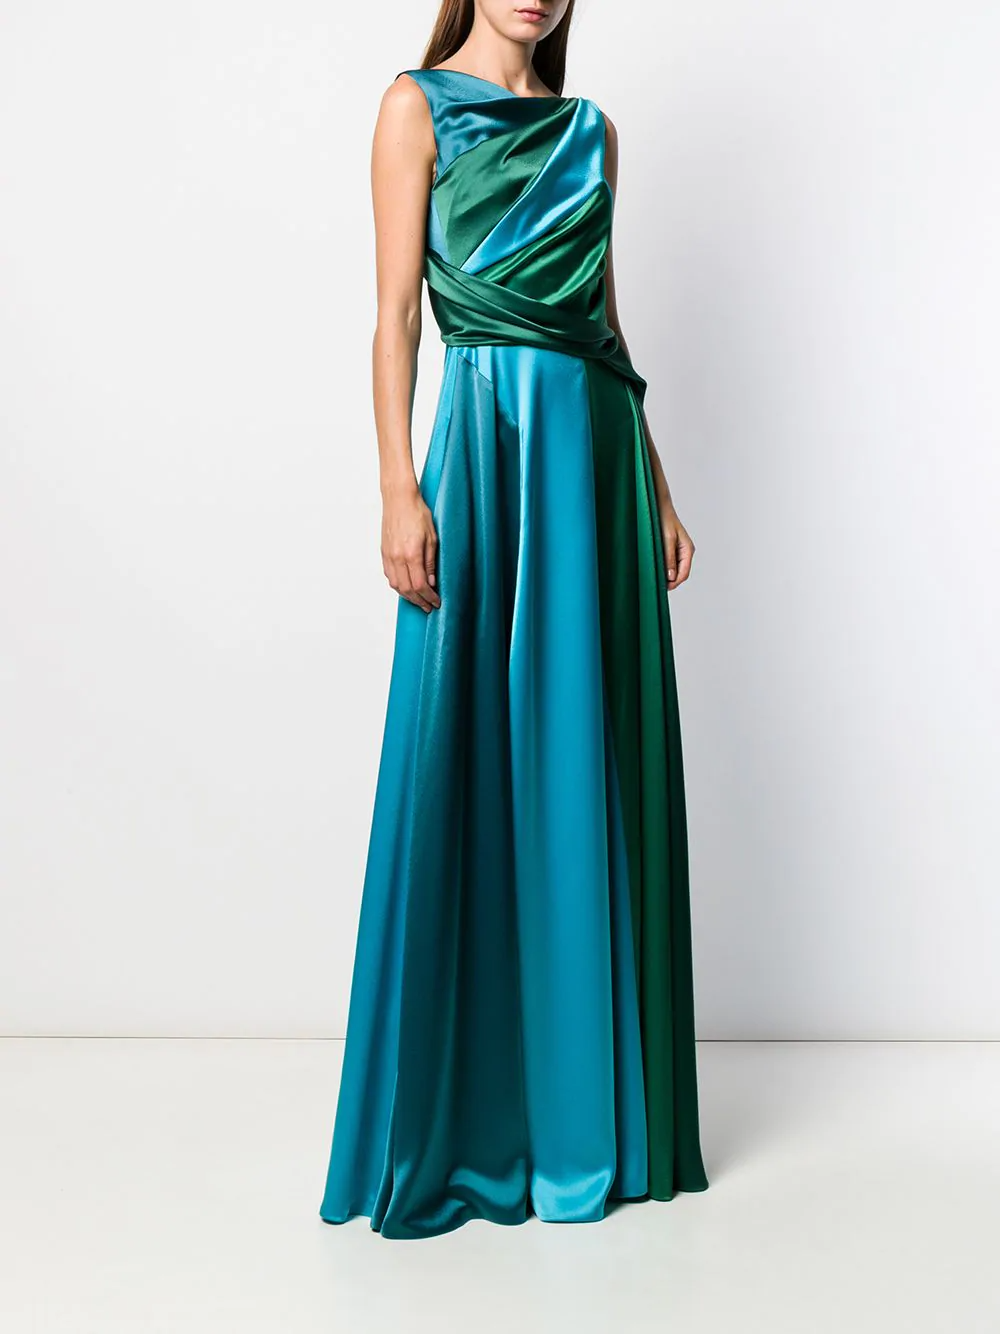 Talbot Runhof Solymar Gown Farfetch In 2021 Couture Outfits Gowns Talbots [ 1334 x 1000 Pixel ]